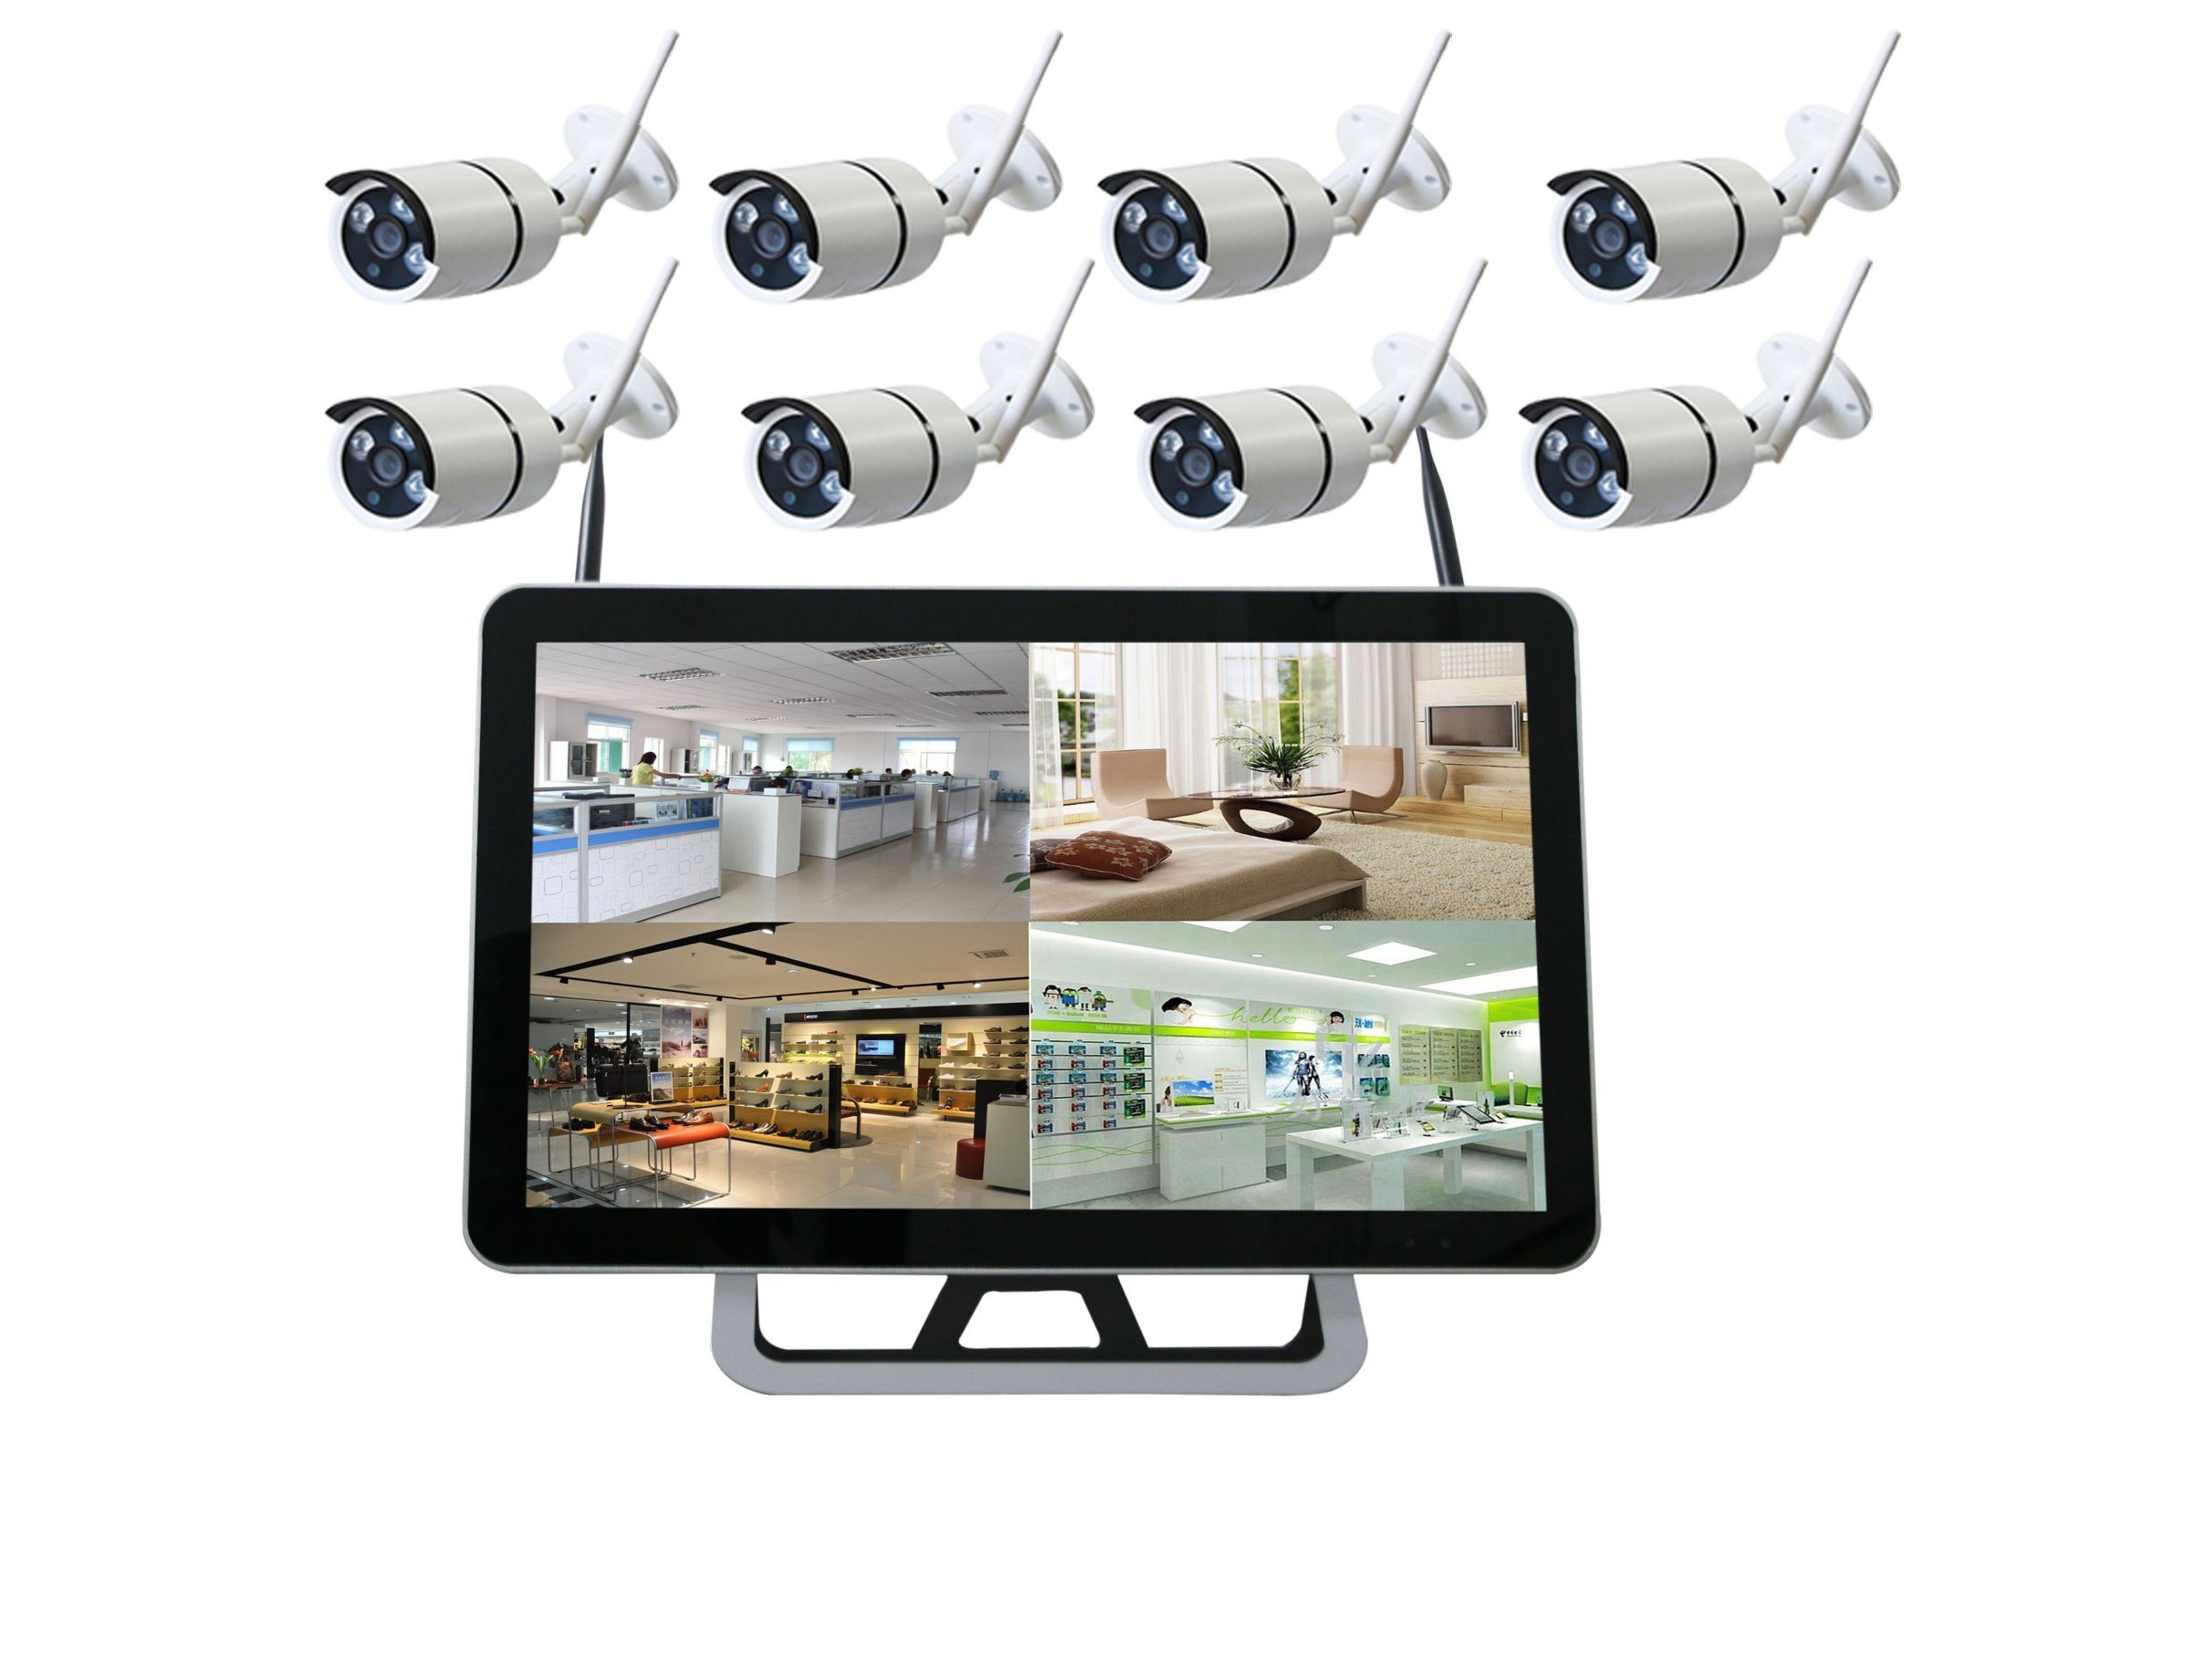 China Cctv System 1080p 8ch Hd Wireless Nvr Kit Outdoor Ir Night Vision Ip Camera Wifi Home Security Surveillance